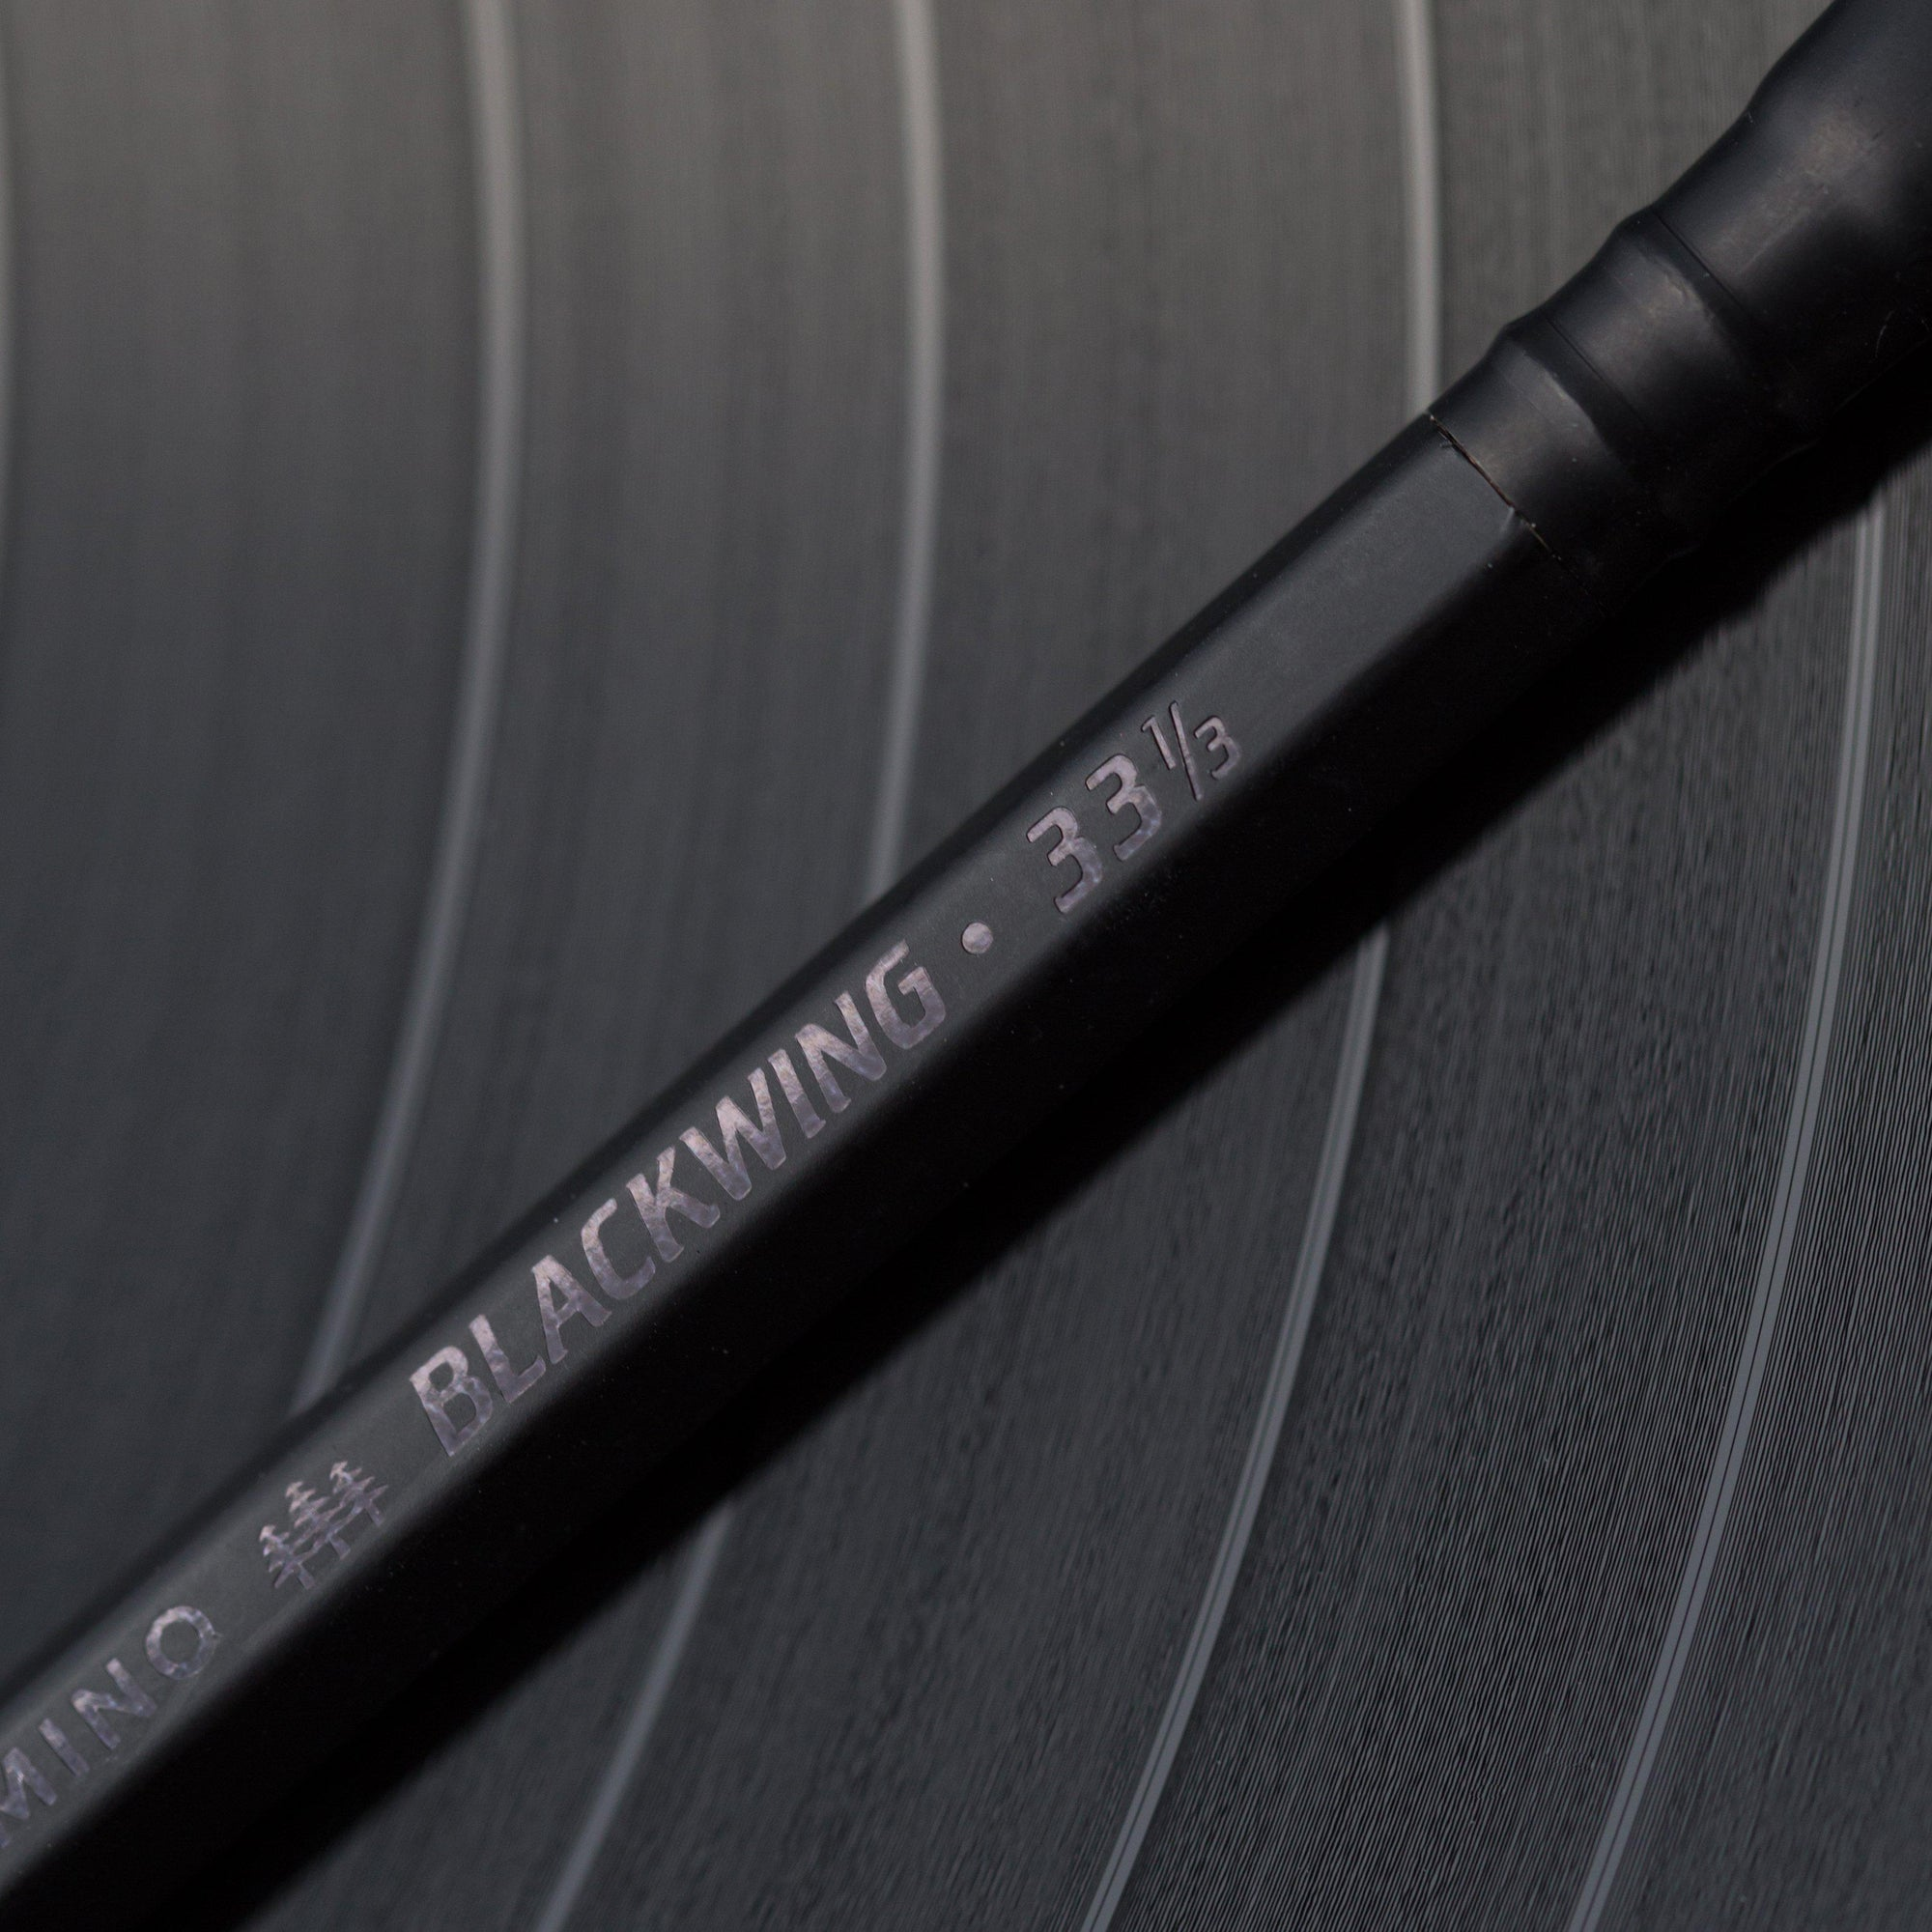 Blackwing Volume 33 1/3: A Tribute to Vinyl Records